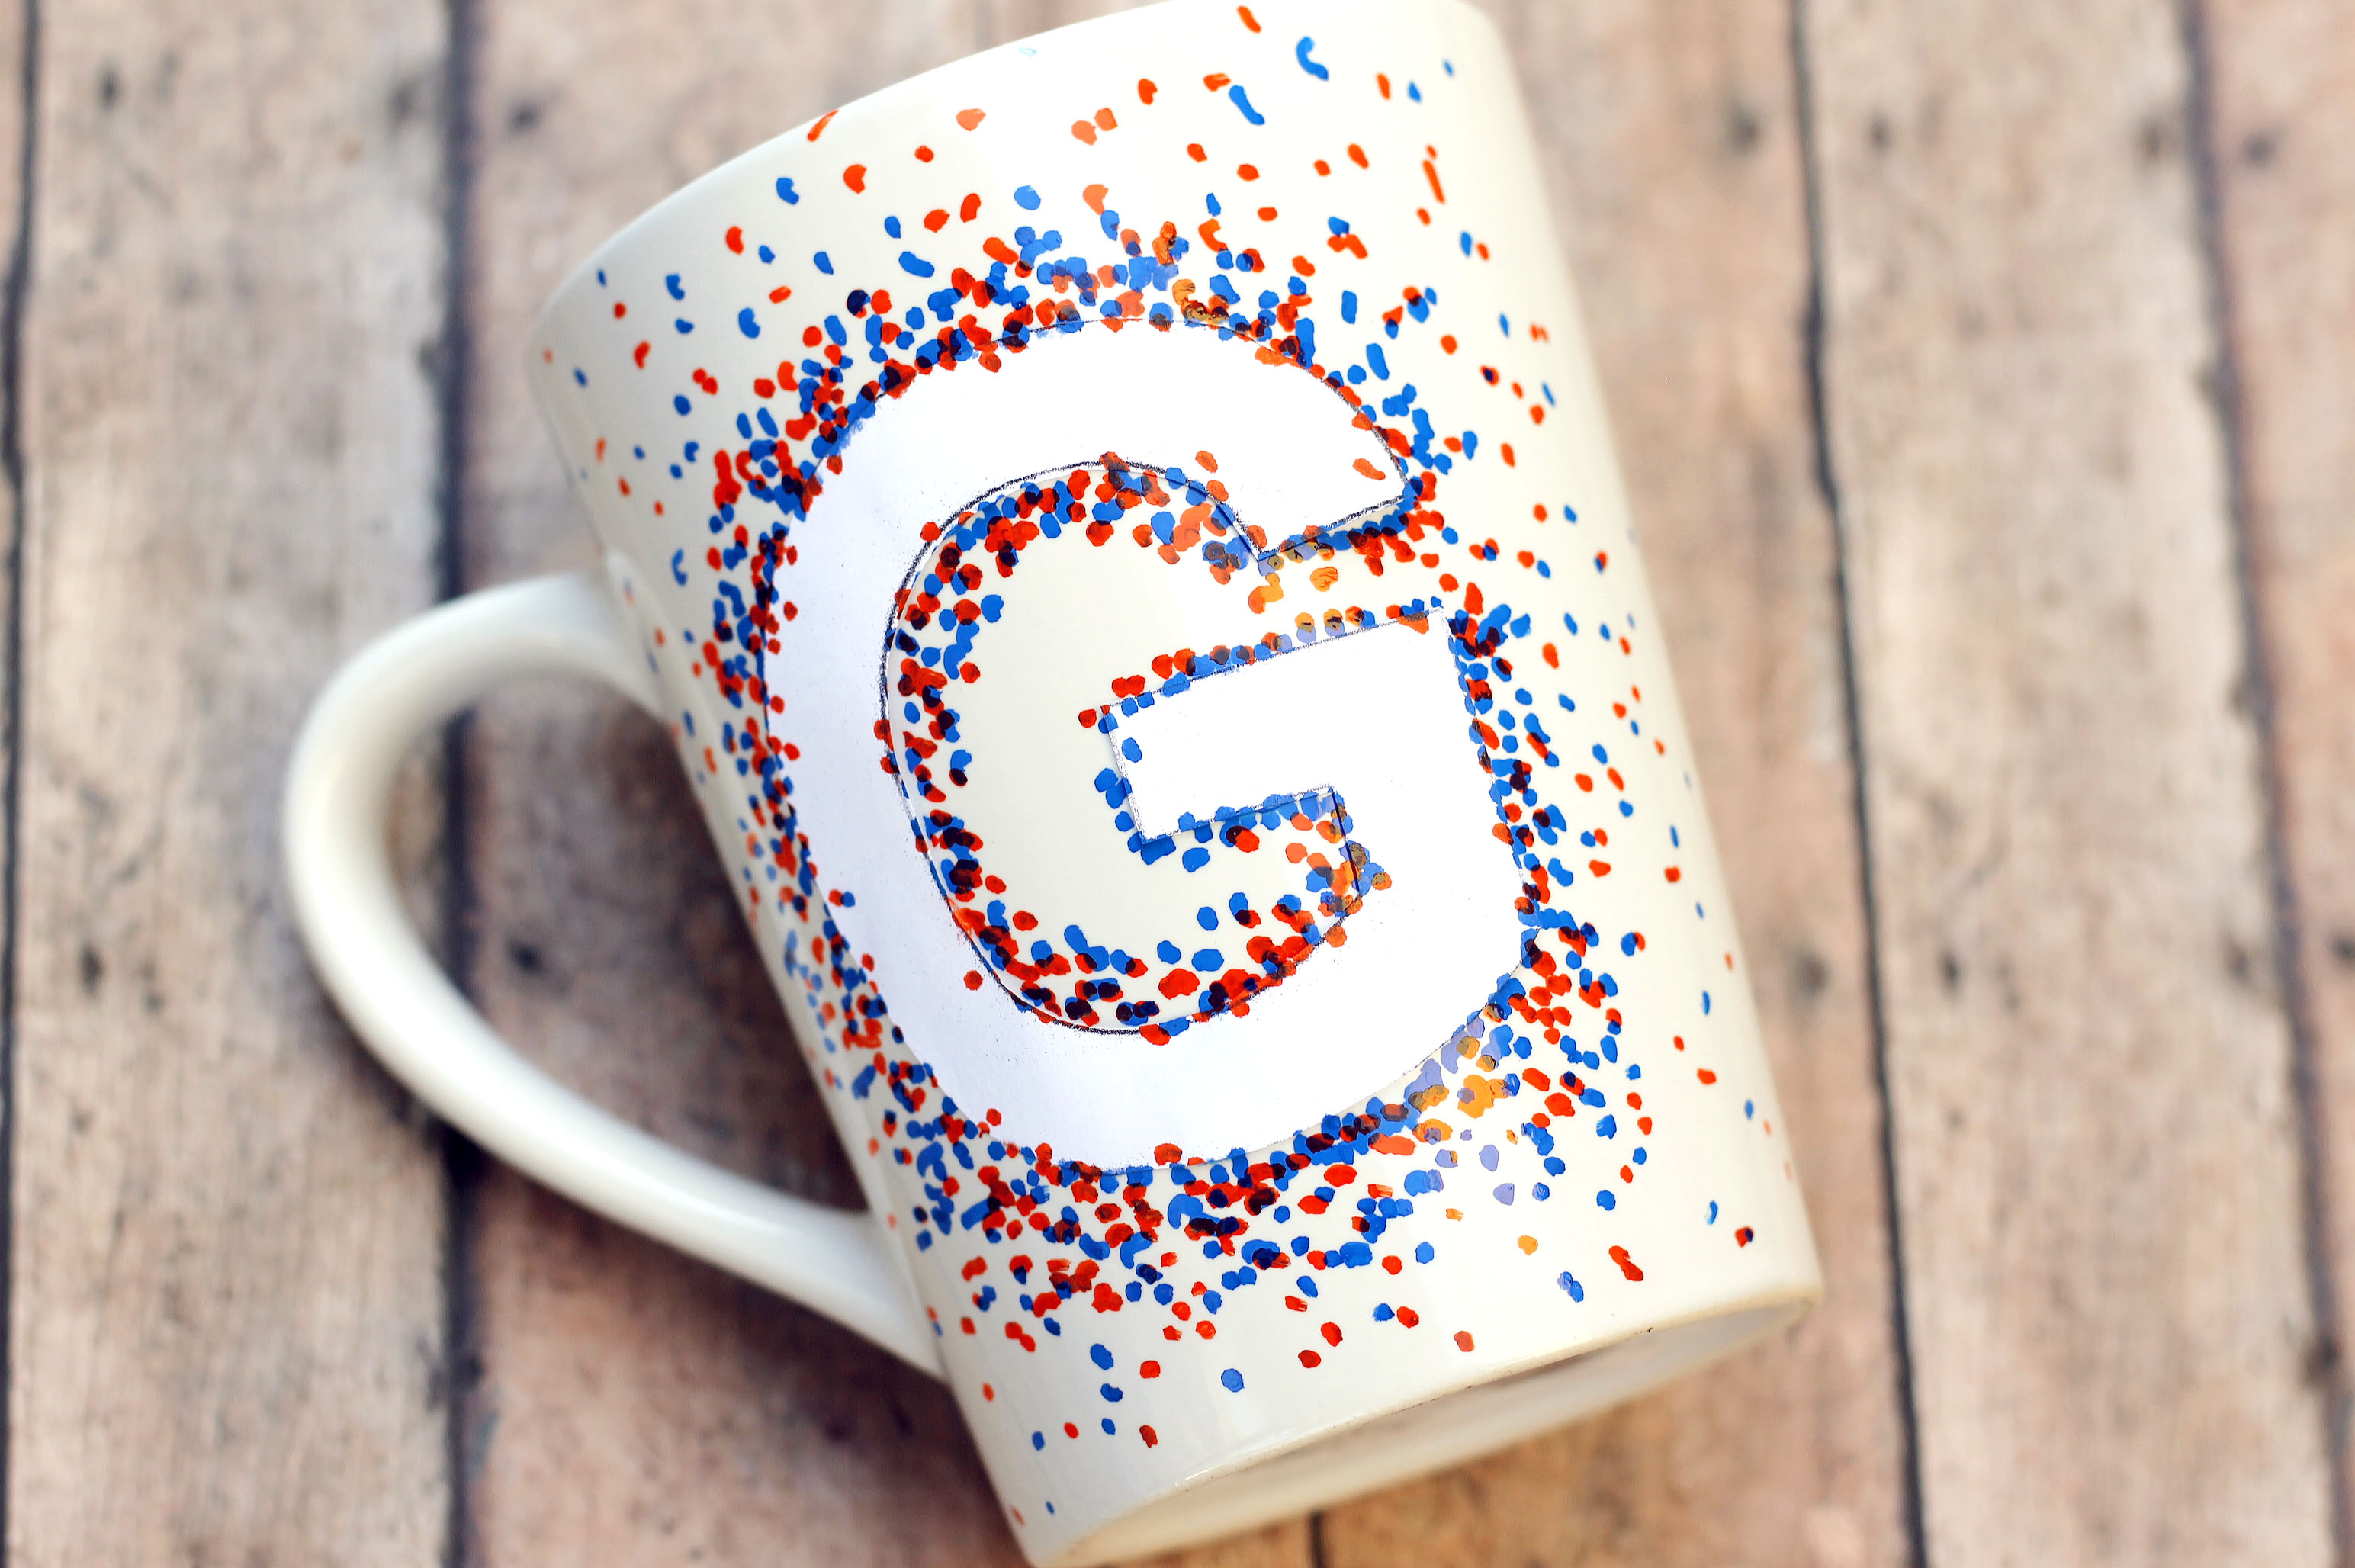 Decorate Your Diy Coffee Mug With Oil Based Paint Pens